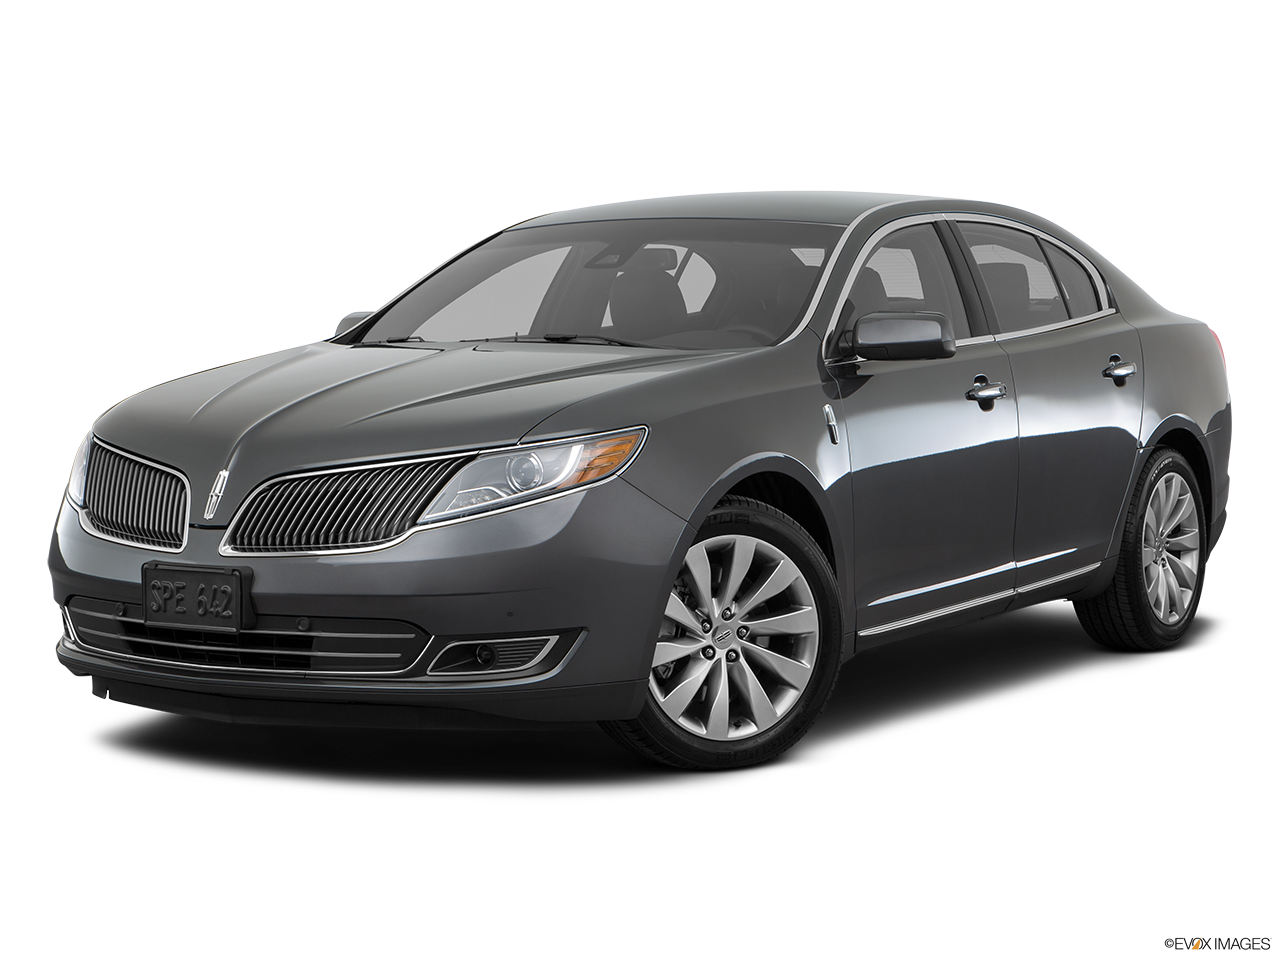 Test Drive A 2016 Lincoln MKS at Galpin Lincoln in Los Angeles